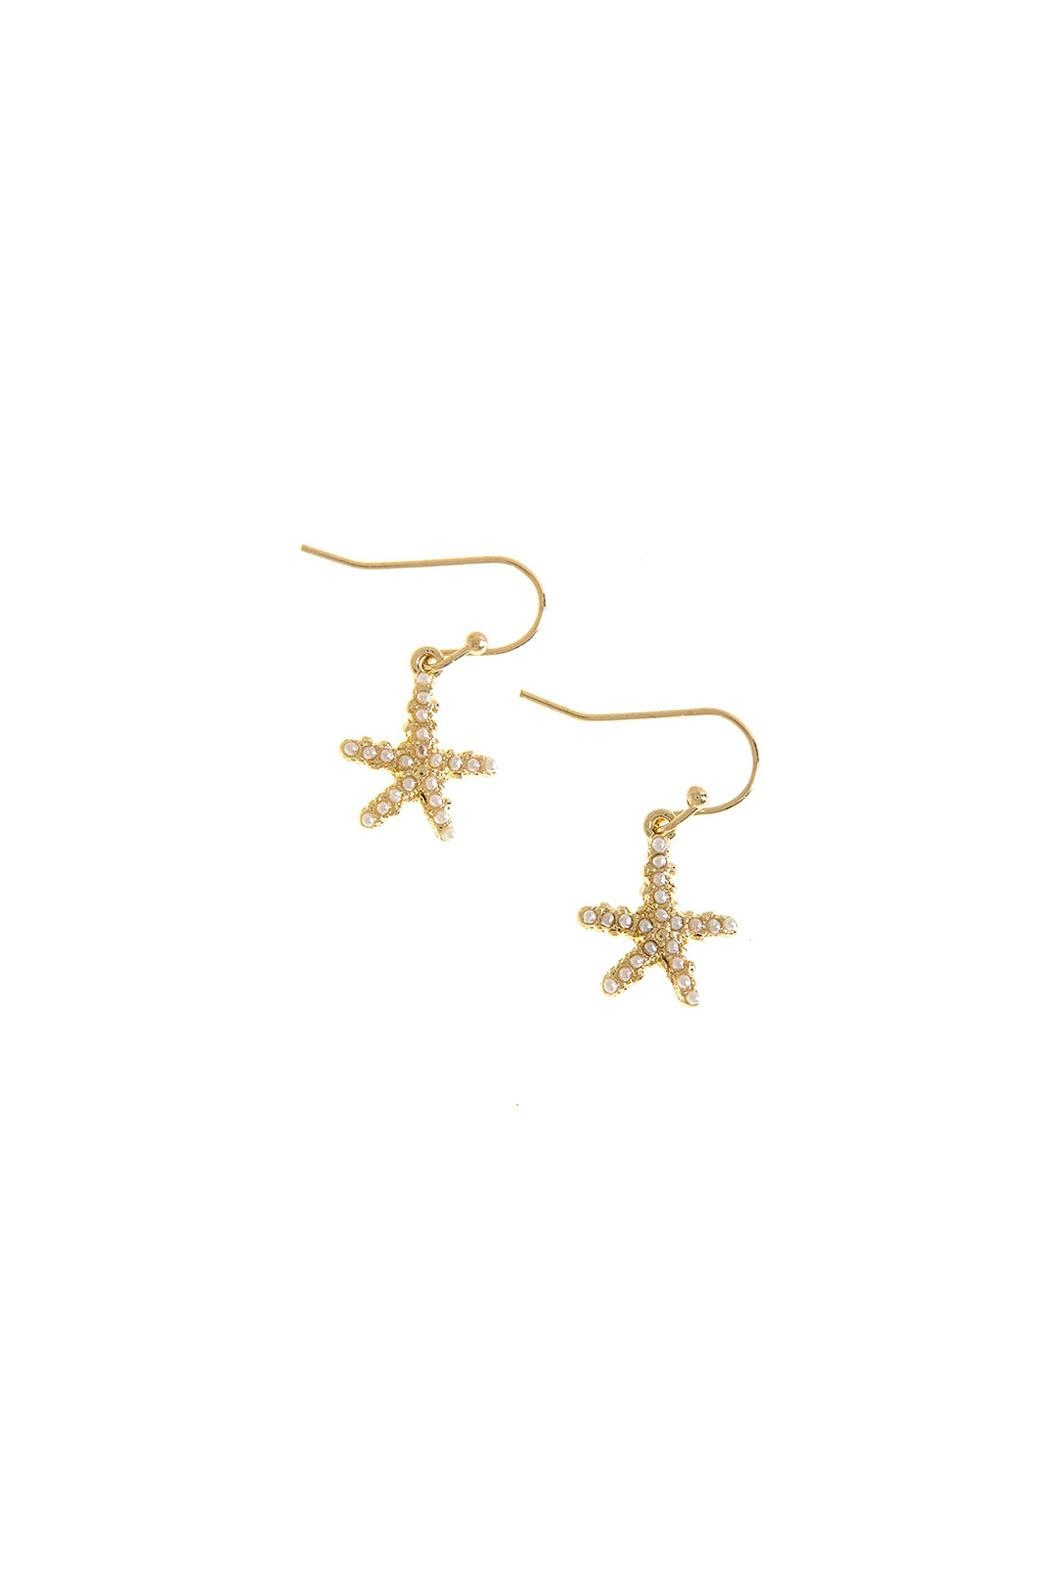 Wild Lilies Jewelry  Pearl Starfish Earrings - Main Image